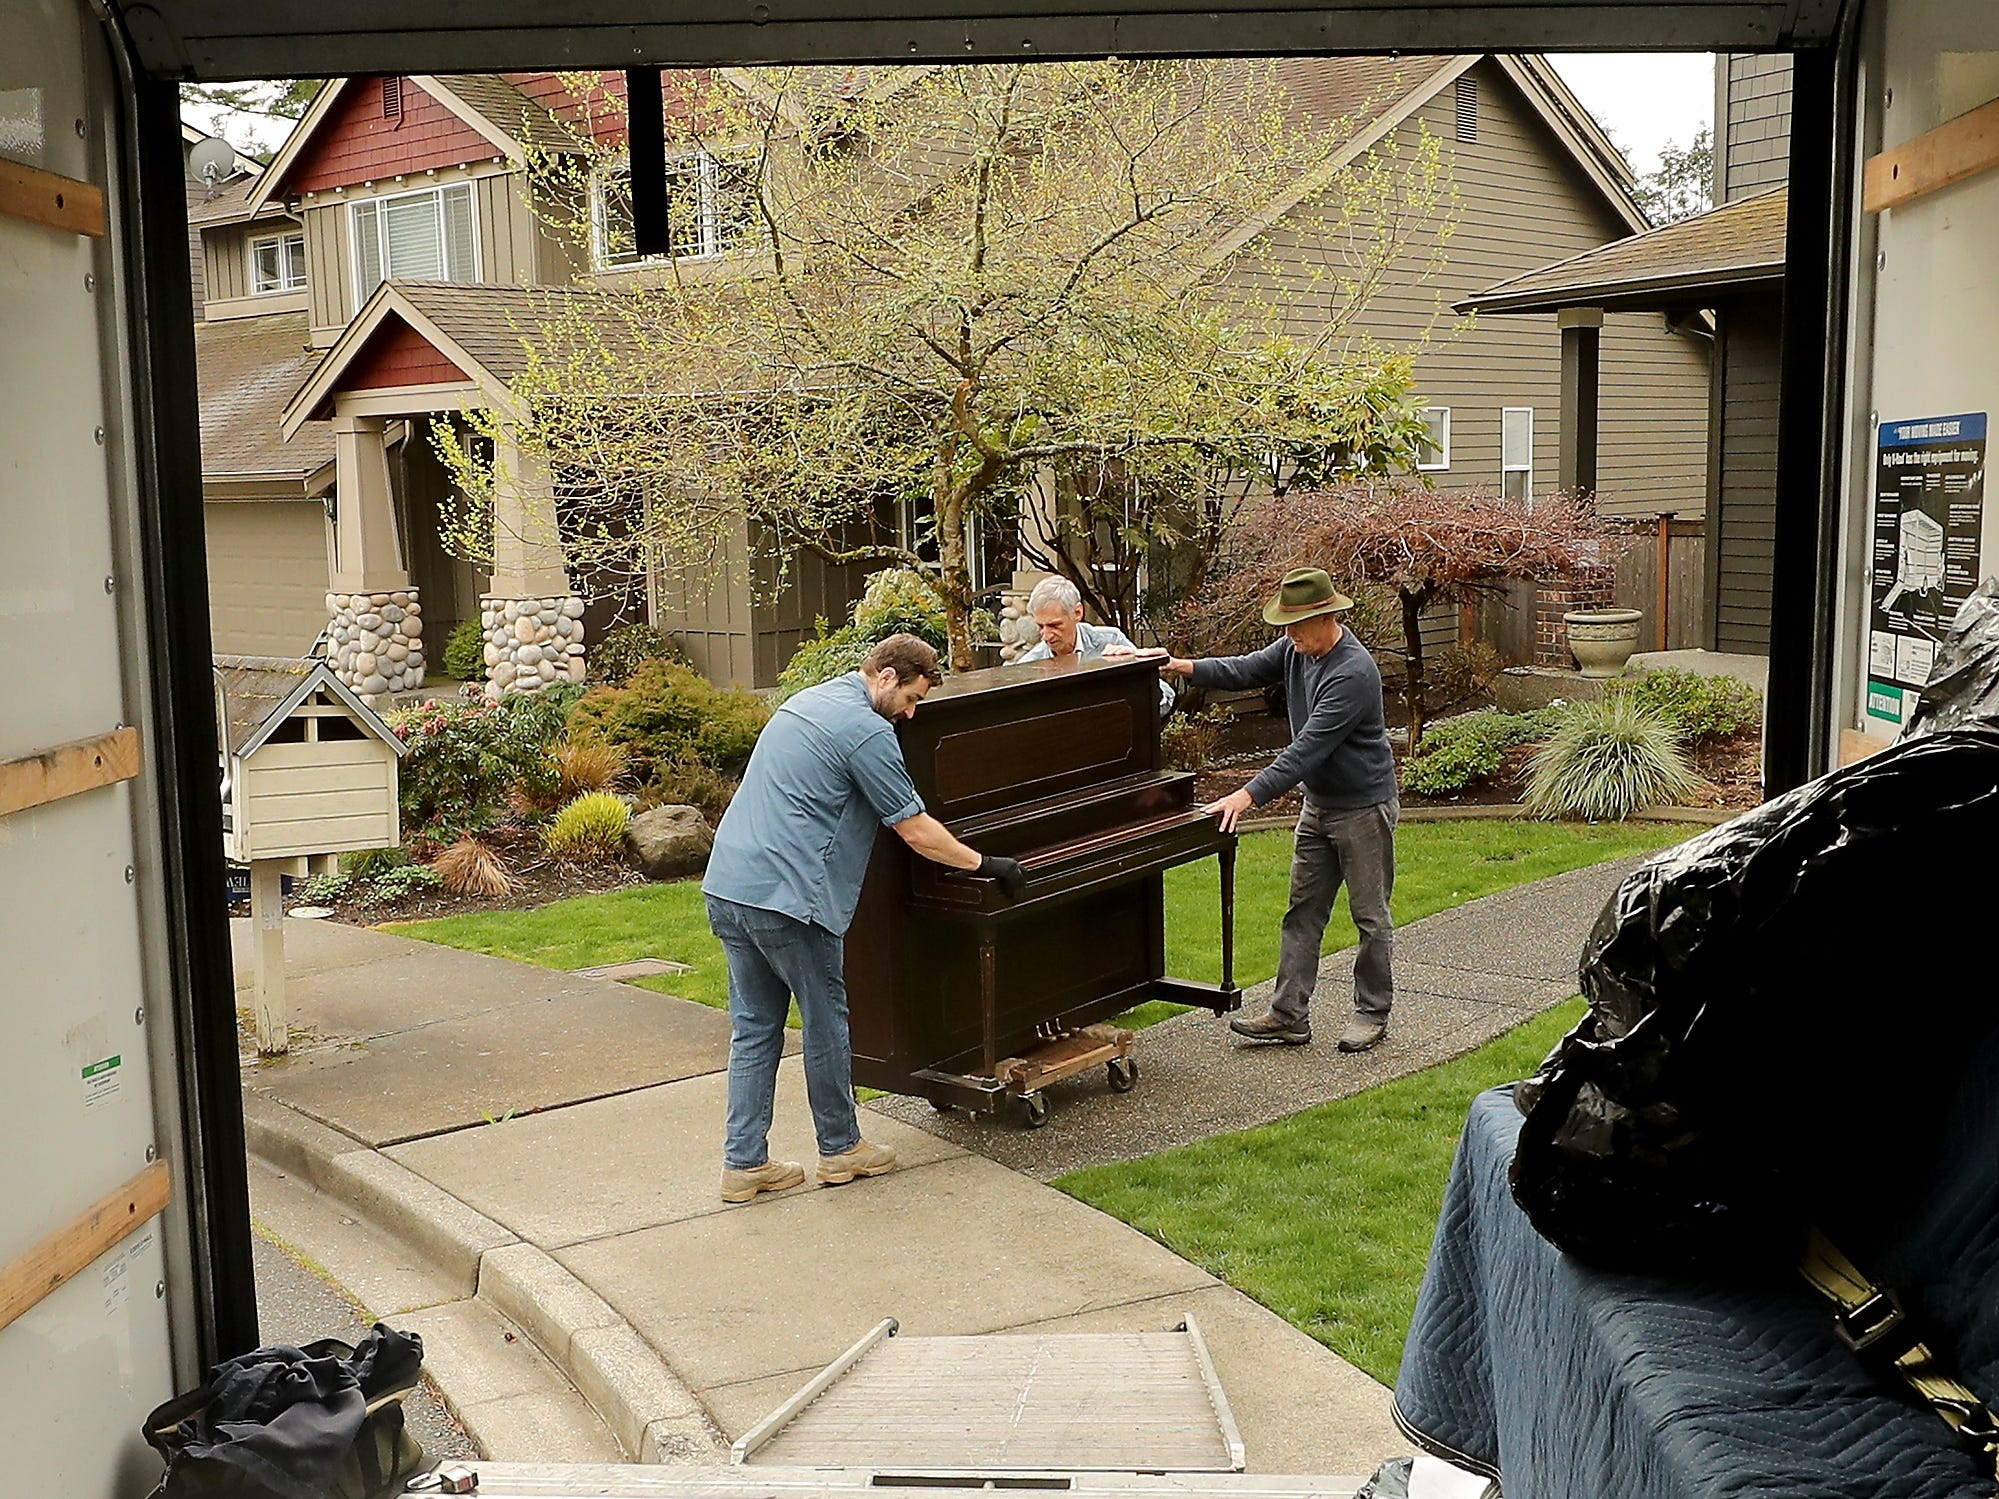 Volunteers (left to right) Garett Jacobson, Mike Dever and Ed Rehder roll a donated piano from a home to the moving truck on Bainbridge Island on Friday, April 5, 2019.